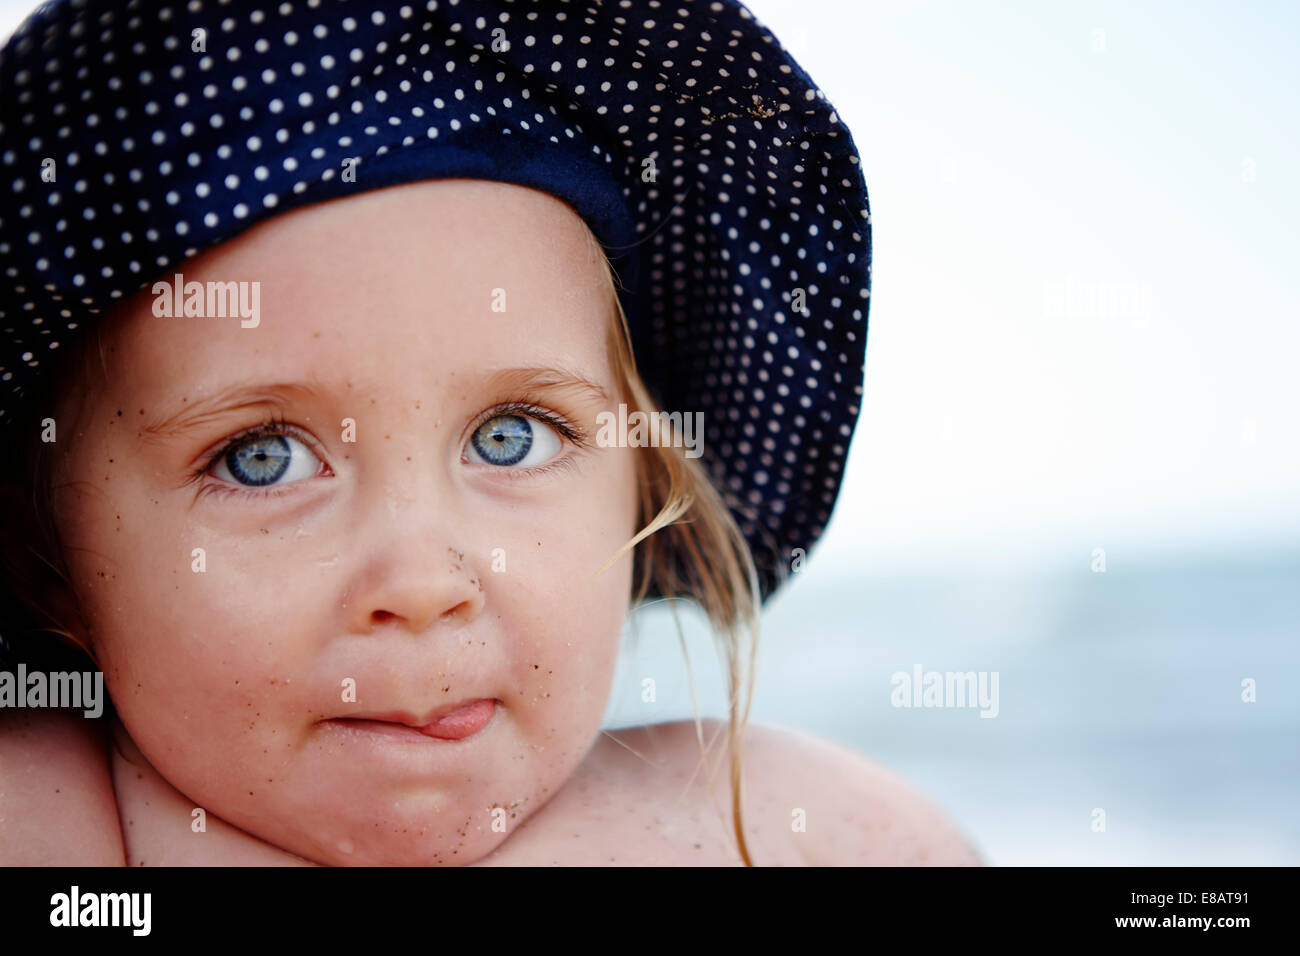 Young girl wearing spotty hat, portrait - Stock Image